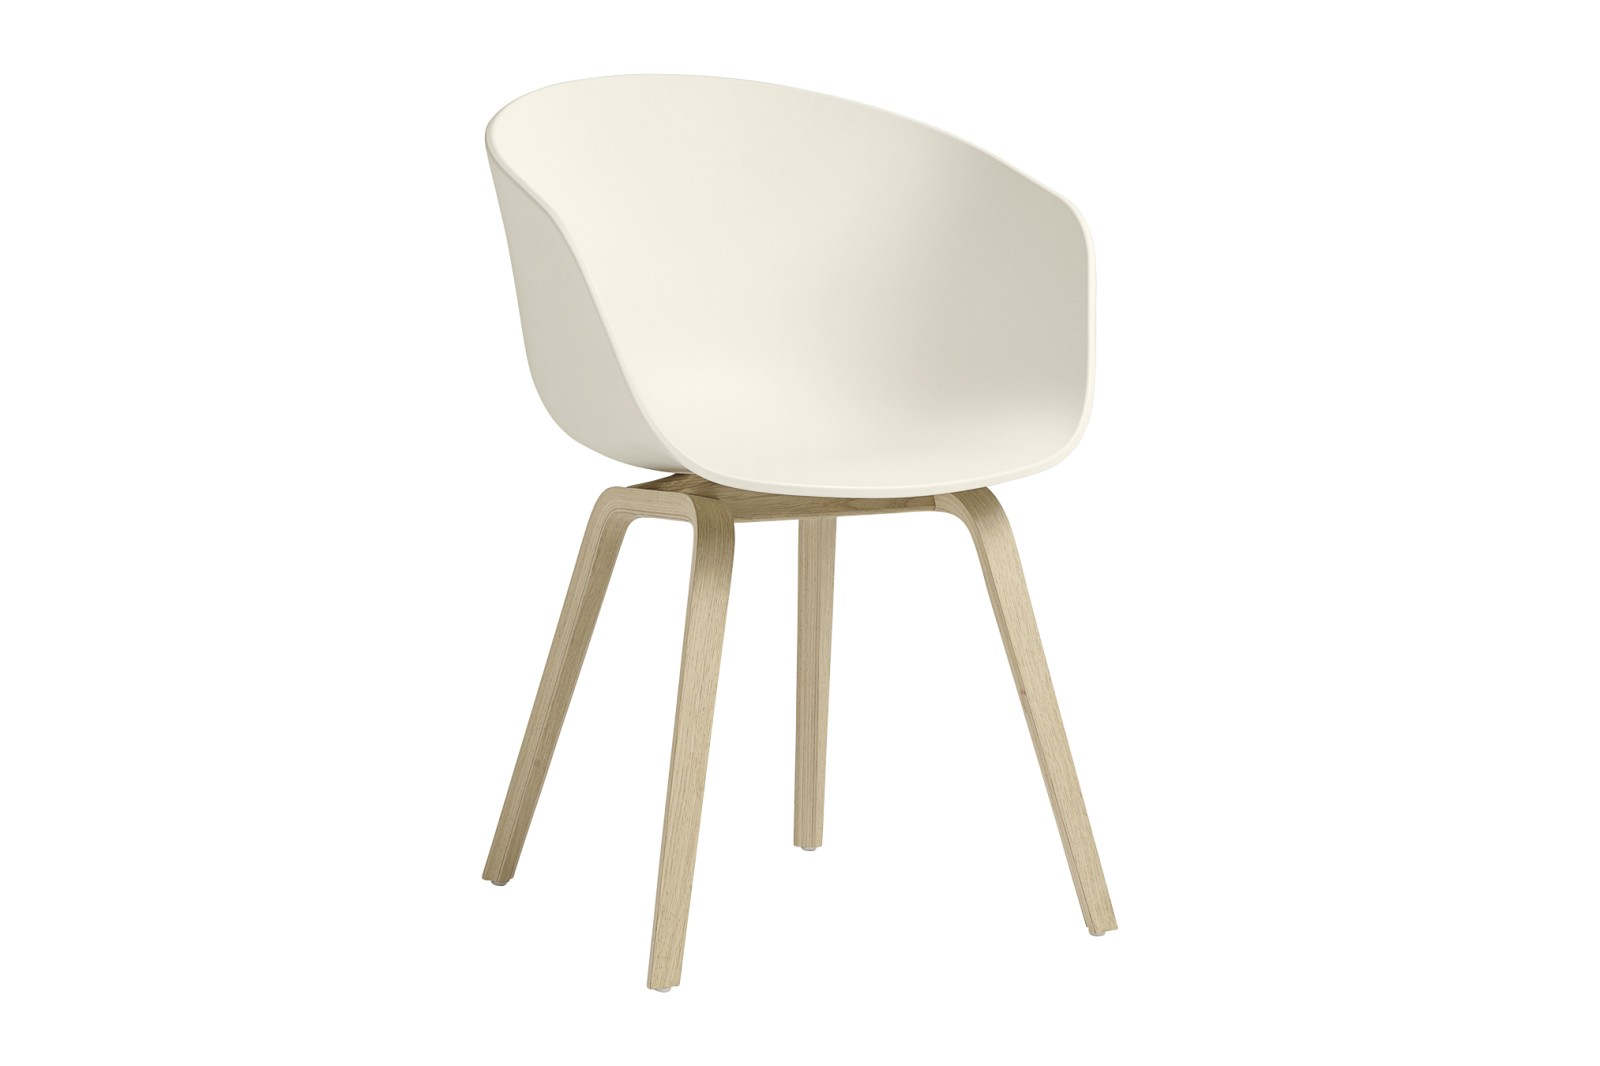 About A Chair AAC22 Cream White Seat, Matt Lacquered Oak Base